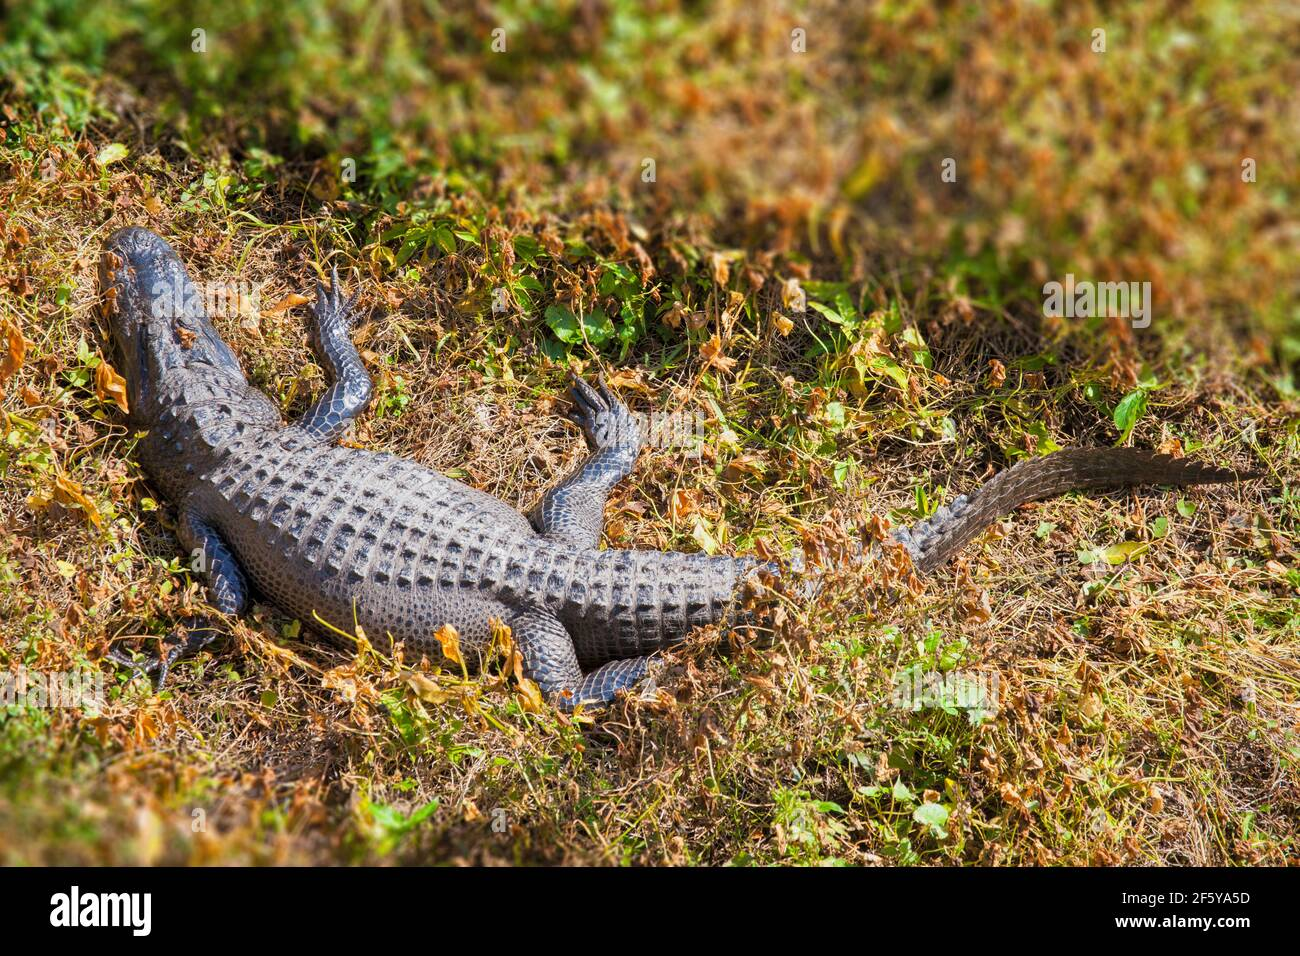 An alligator seen from the Observation Tower at Shark Valley in Everglades National Park in Florida. Stock Photo